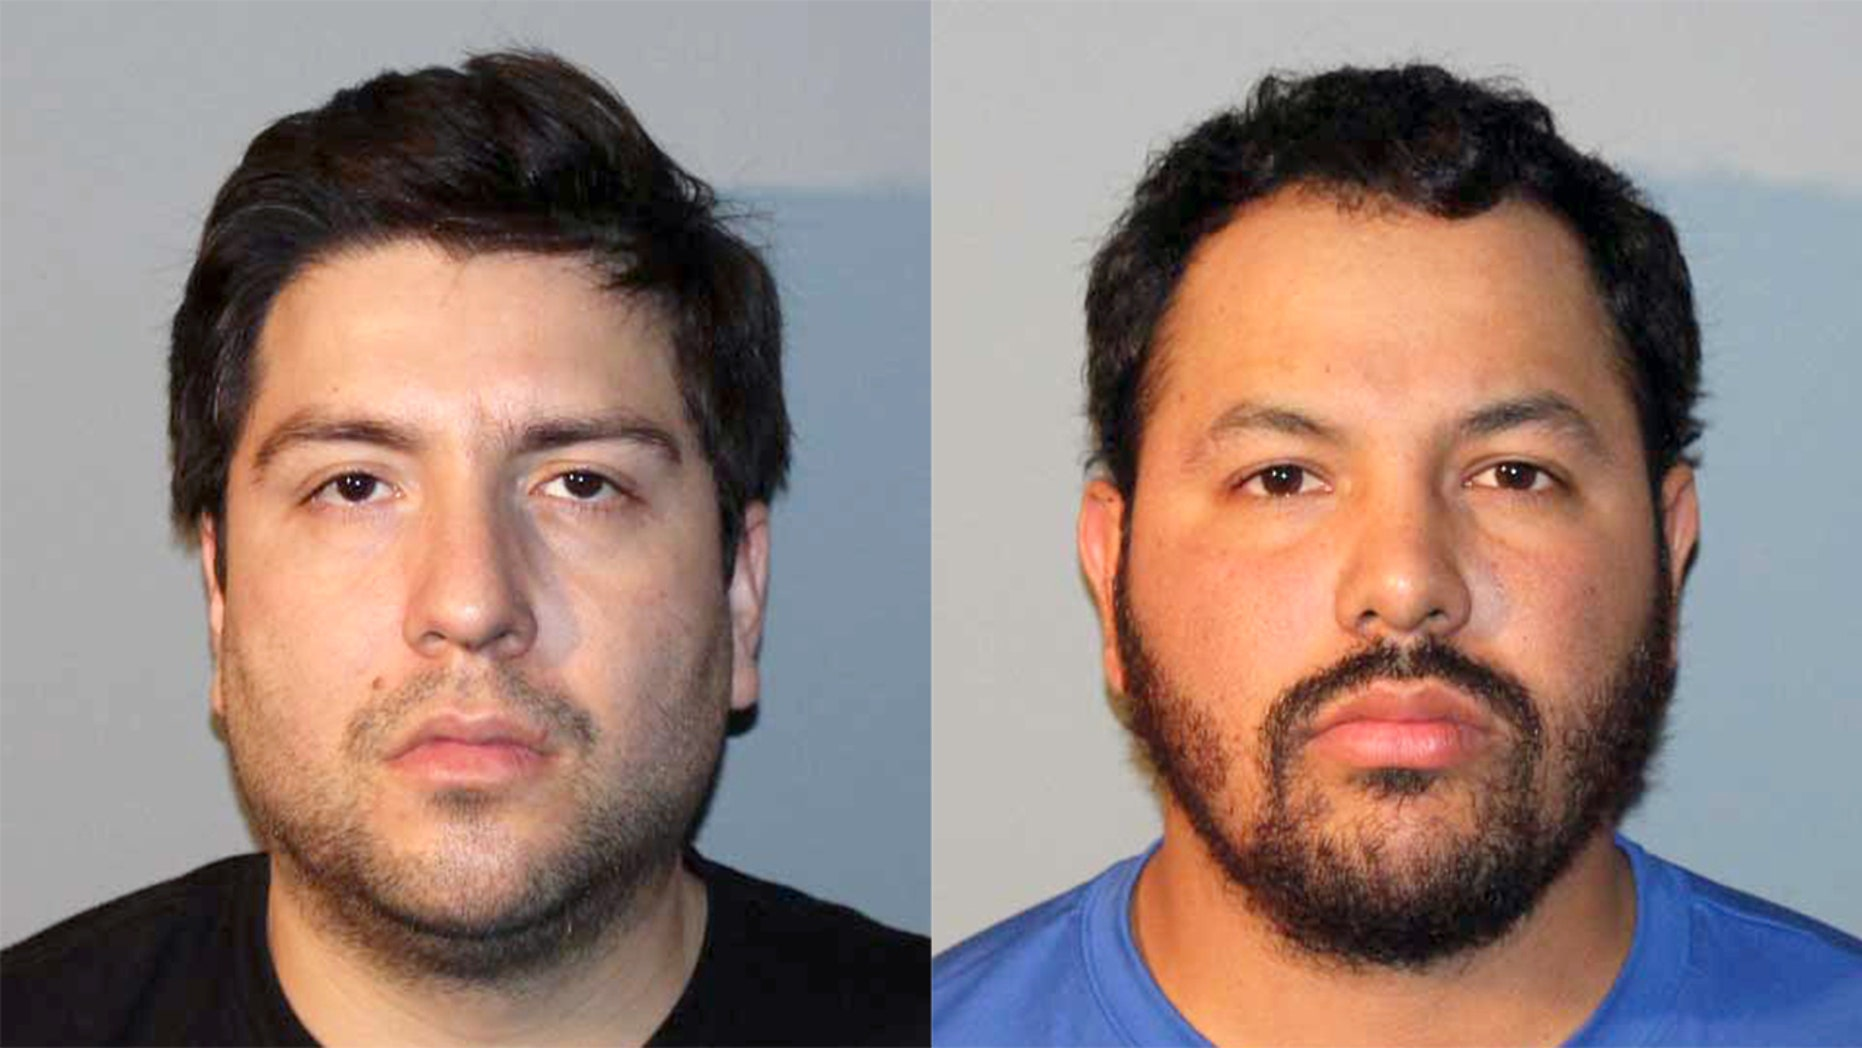 Jesus Carrillo-Pineda, 31, and Daniel Vasquez, 28, were sentenced Friday in New Jersey's largest seizure of fentanyl.